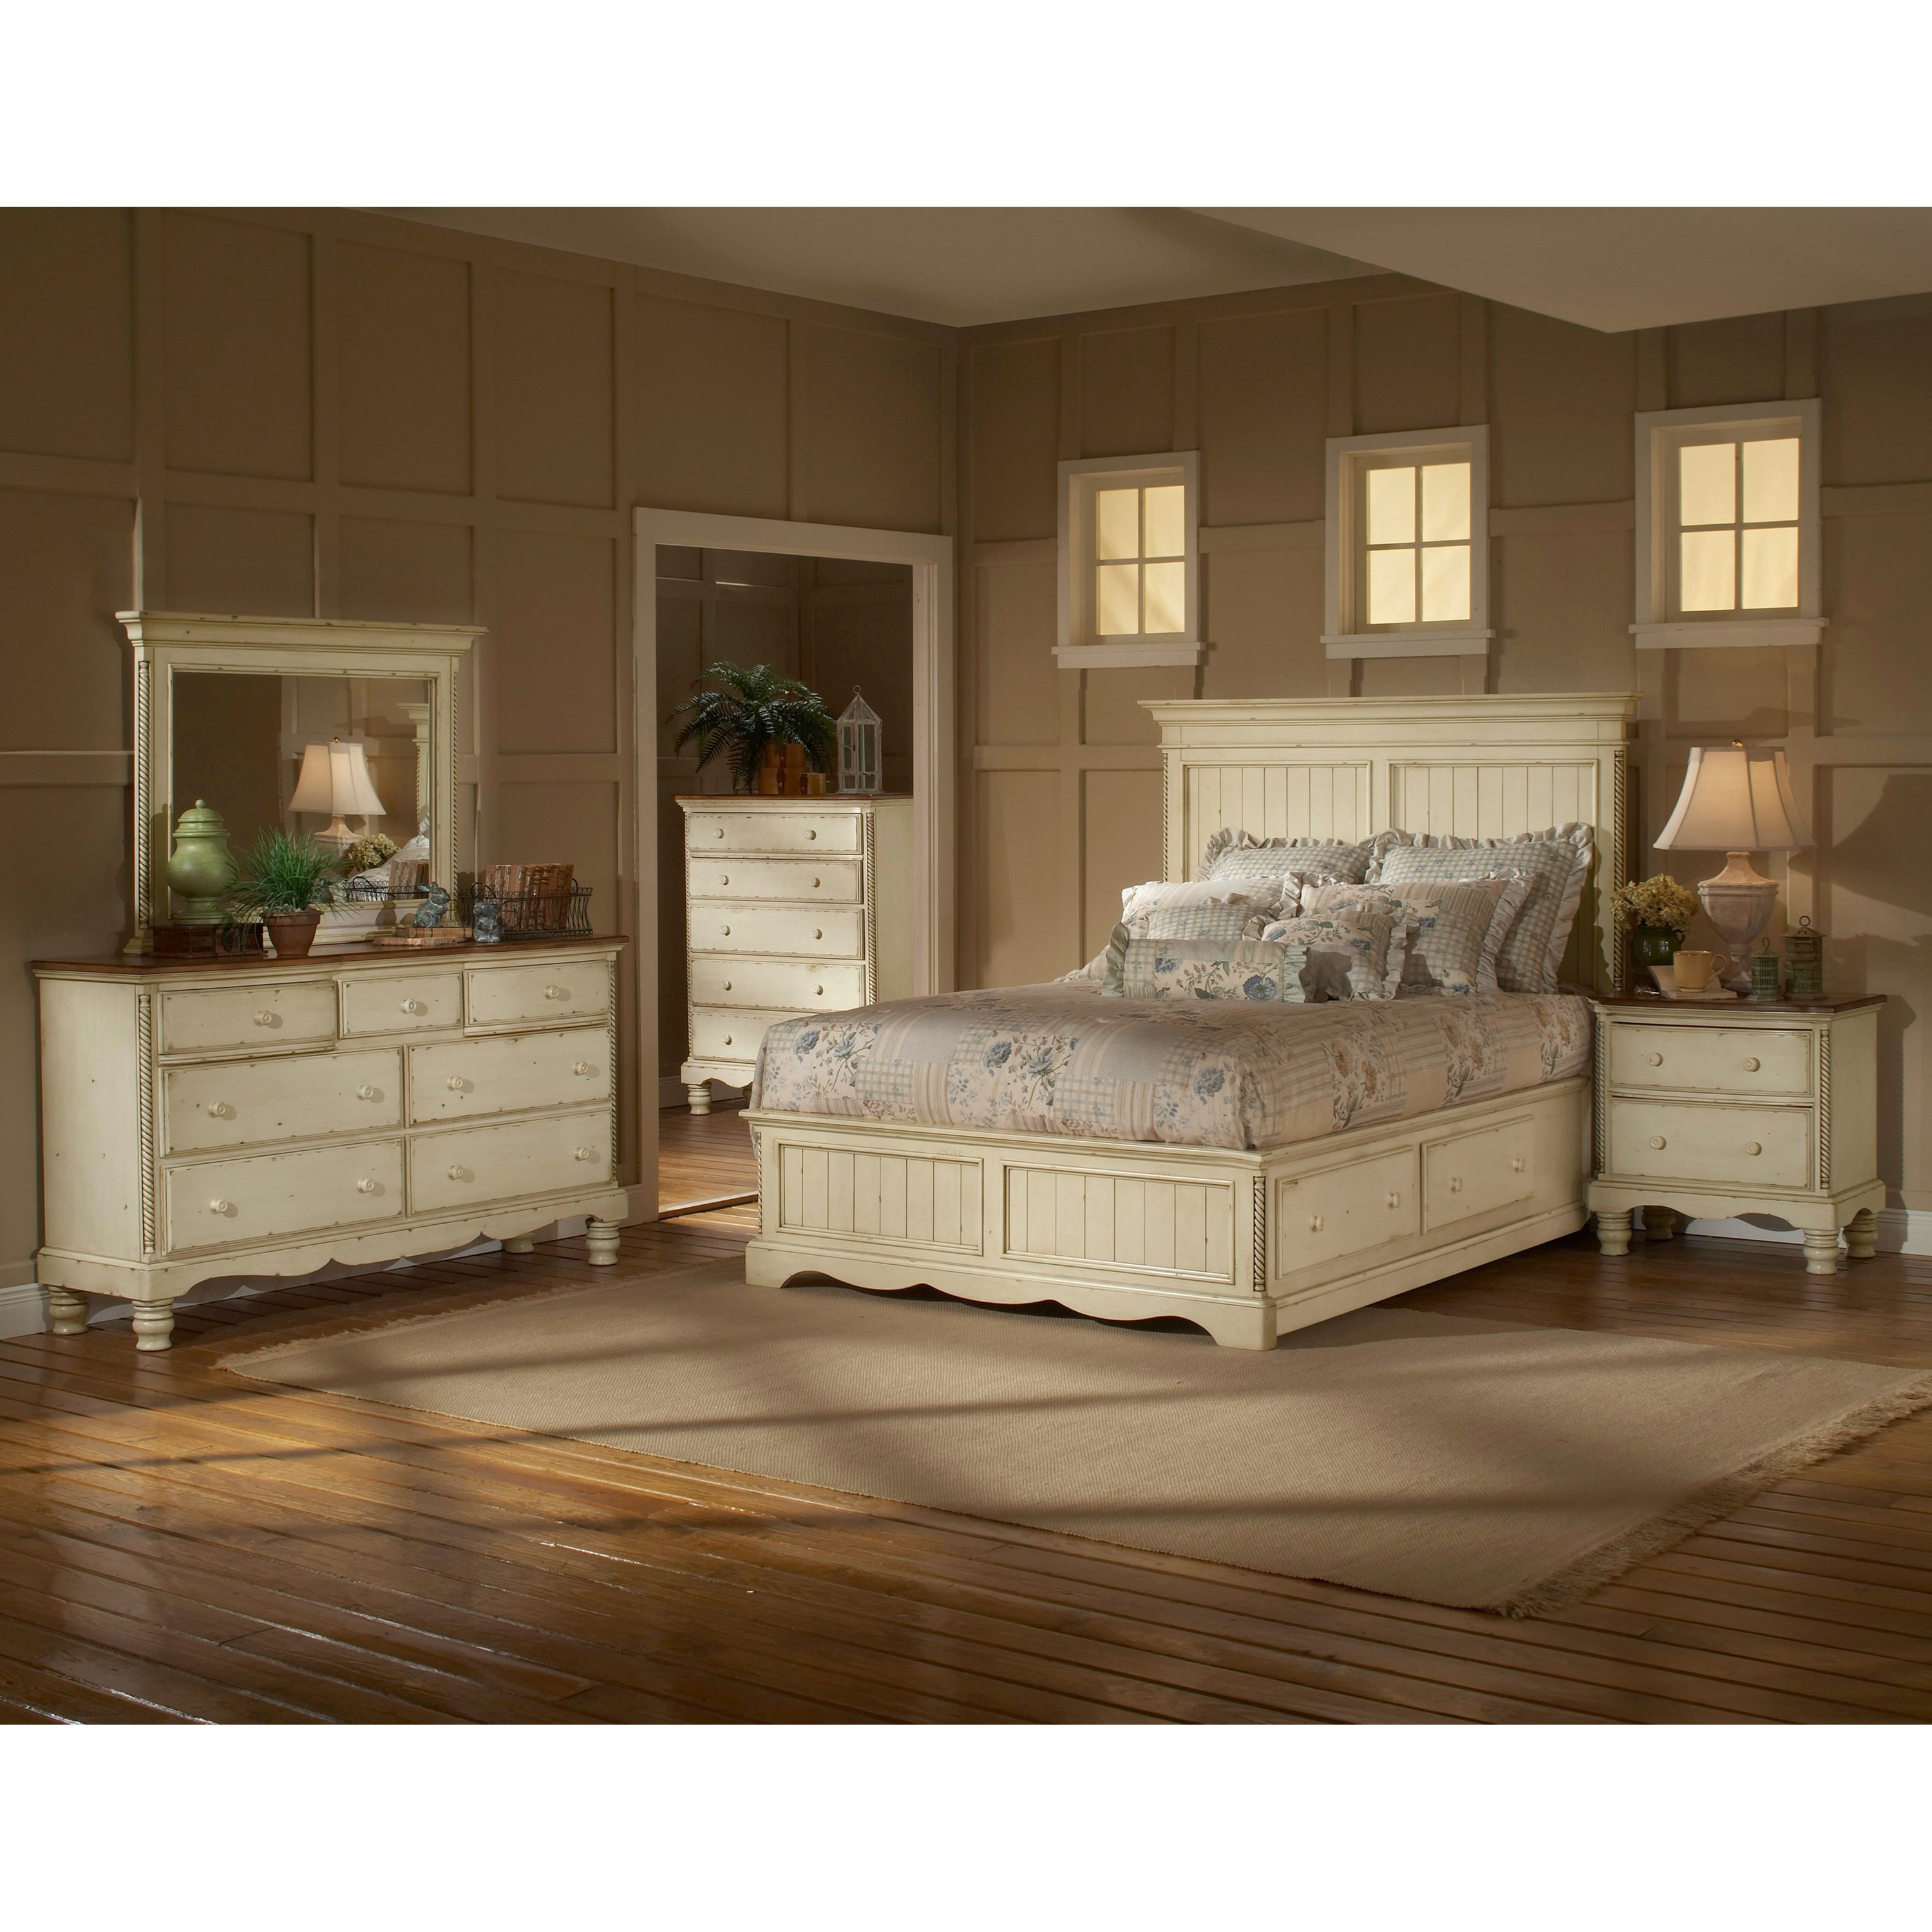 Hillsdale Wilshire 1172stgbkr King Panel Bed Set With